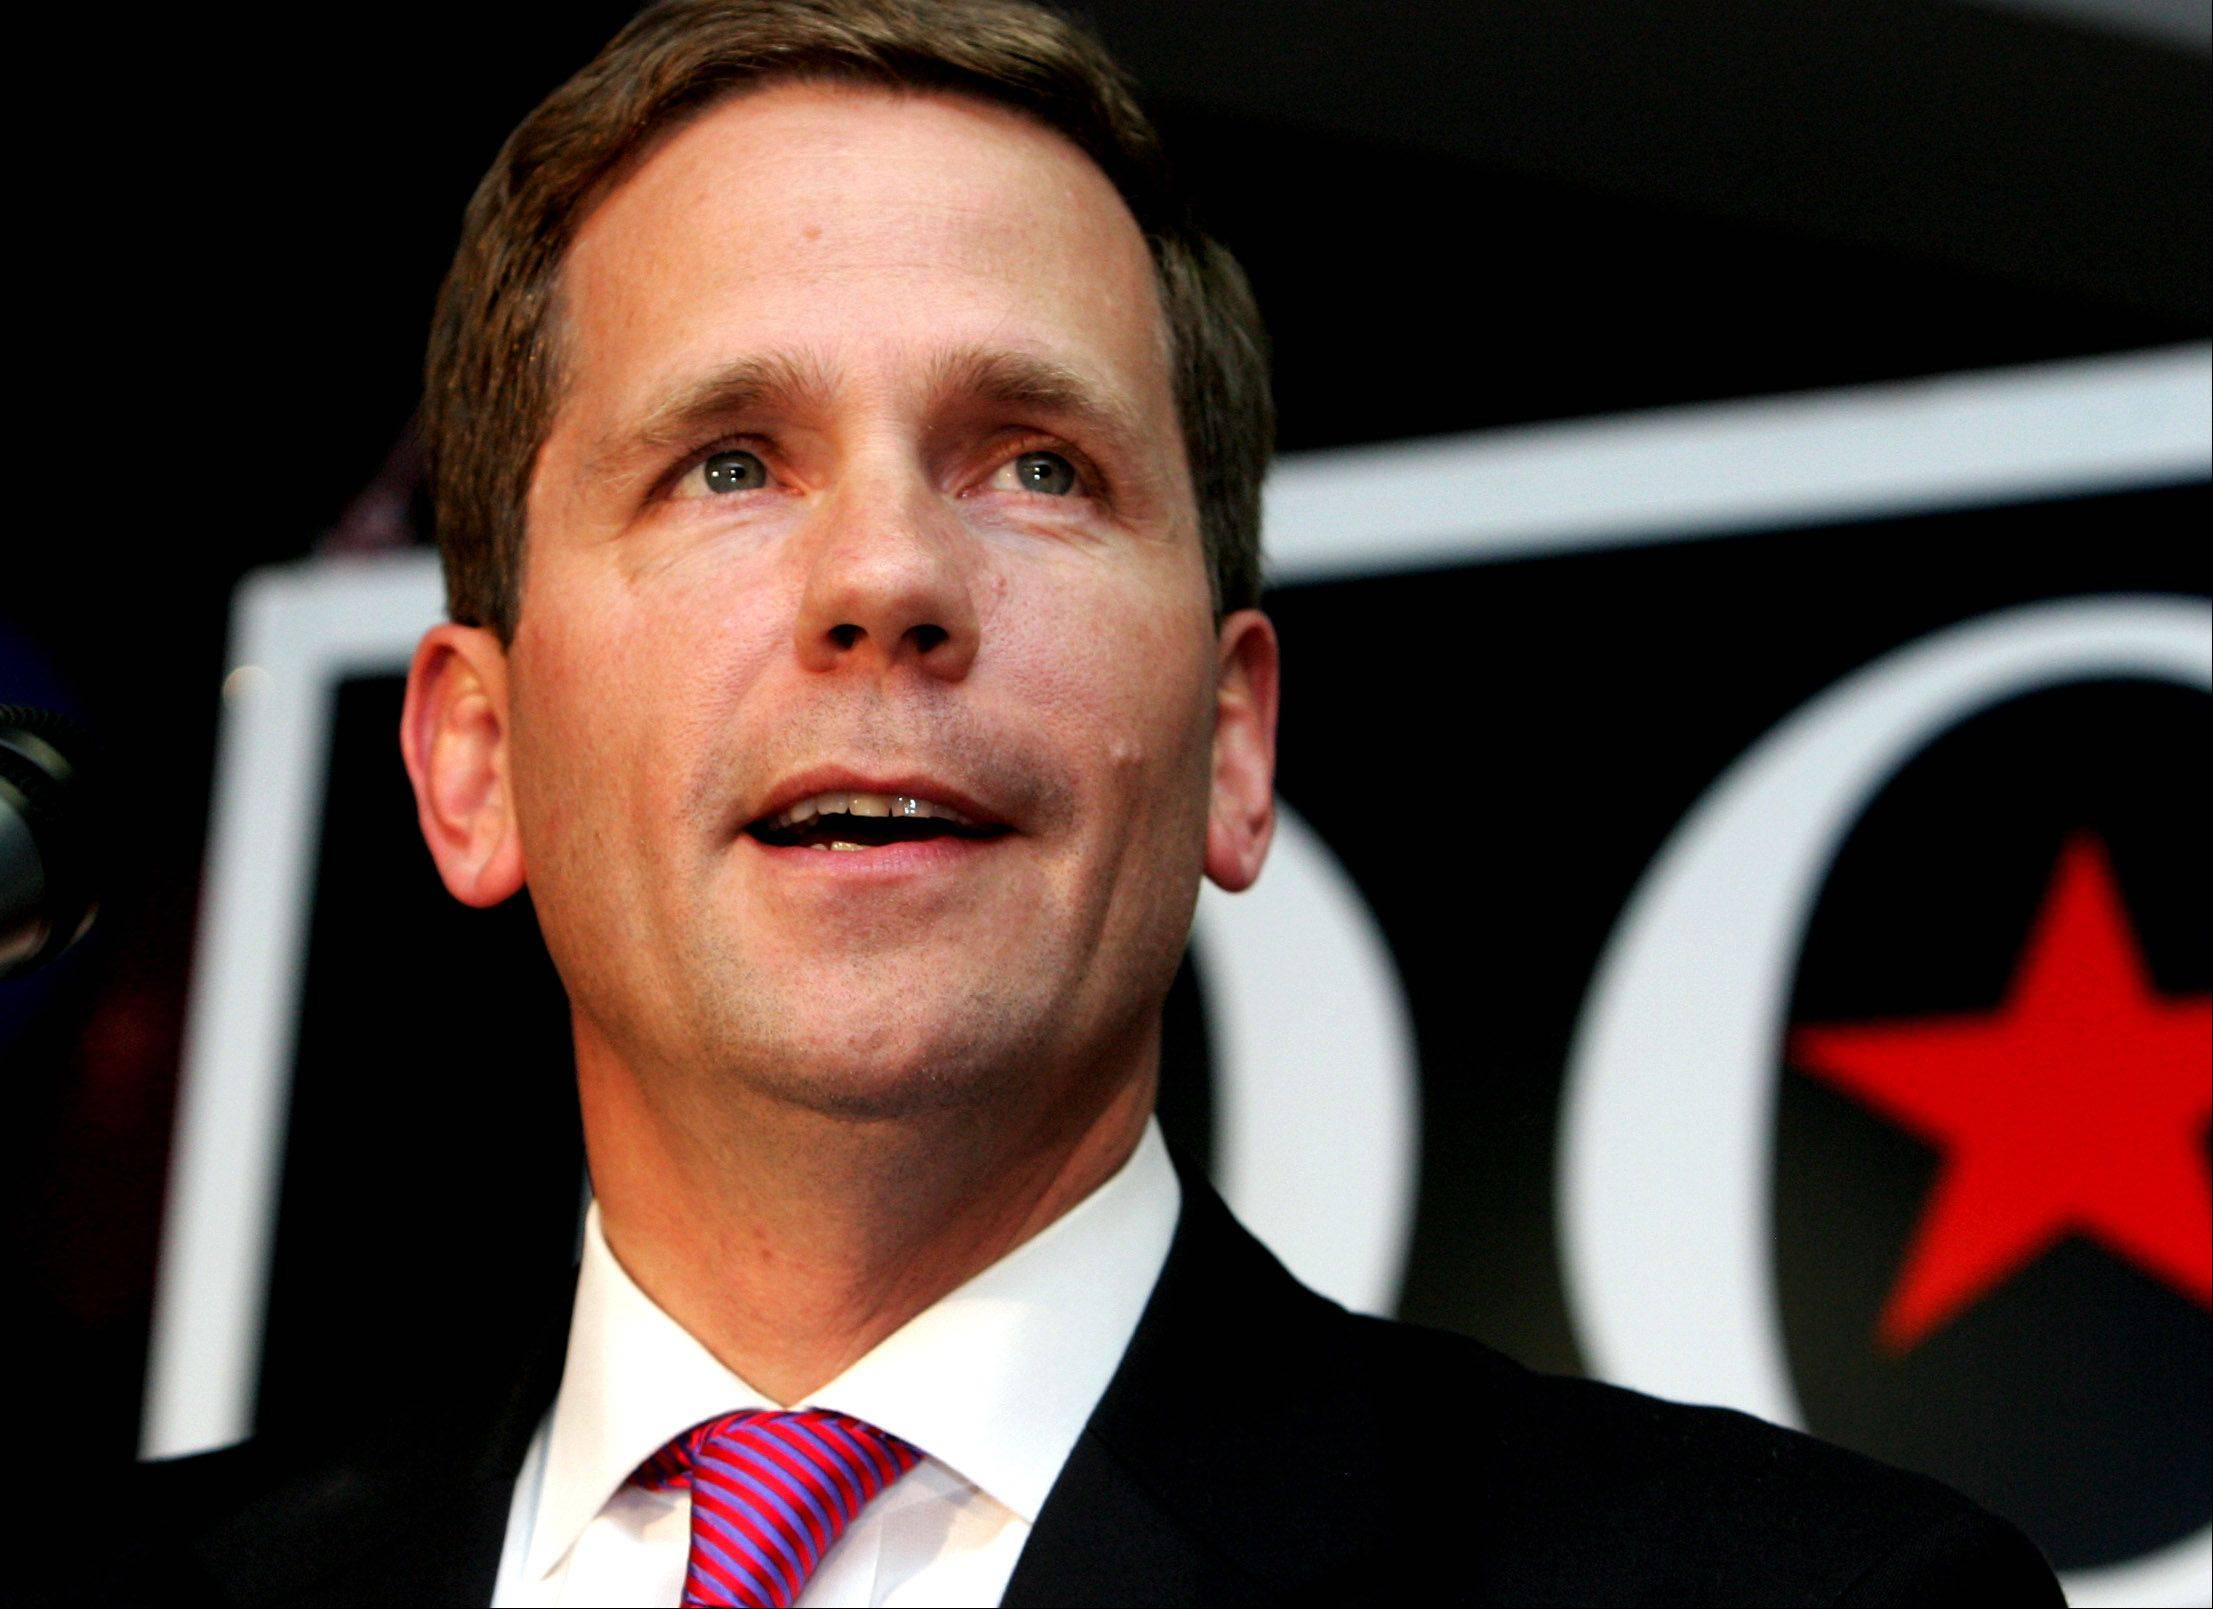 Dold urges compromise in Congress